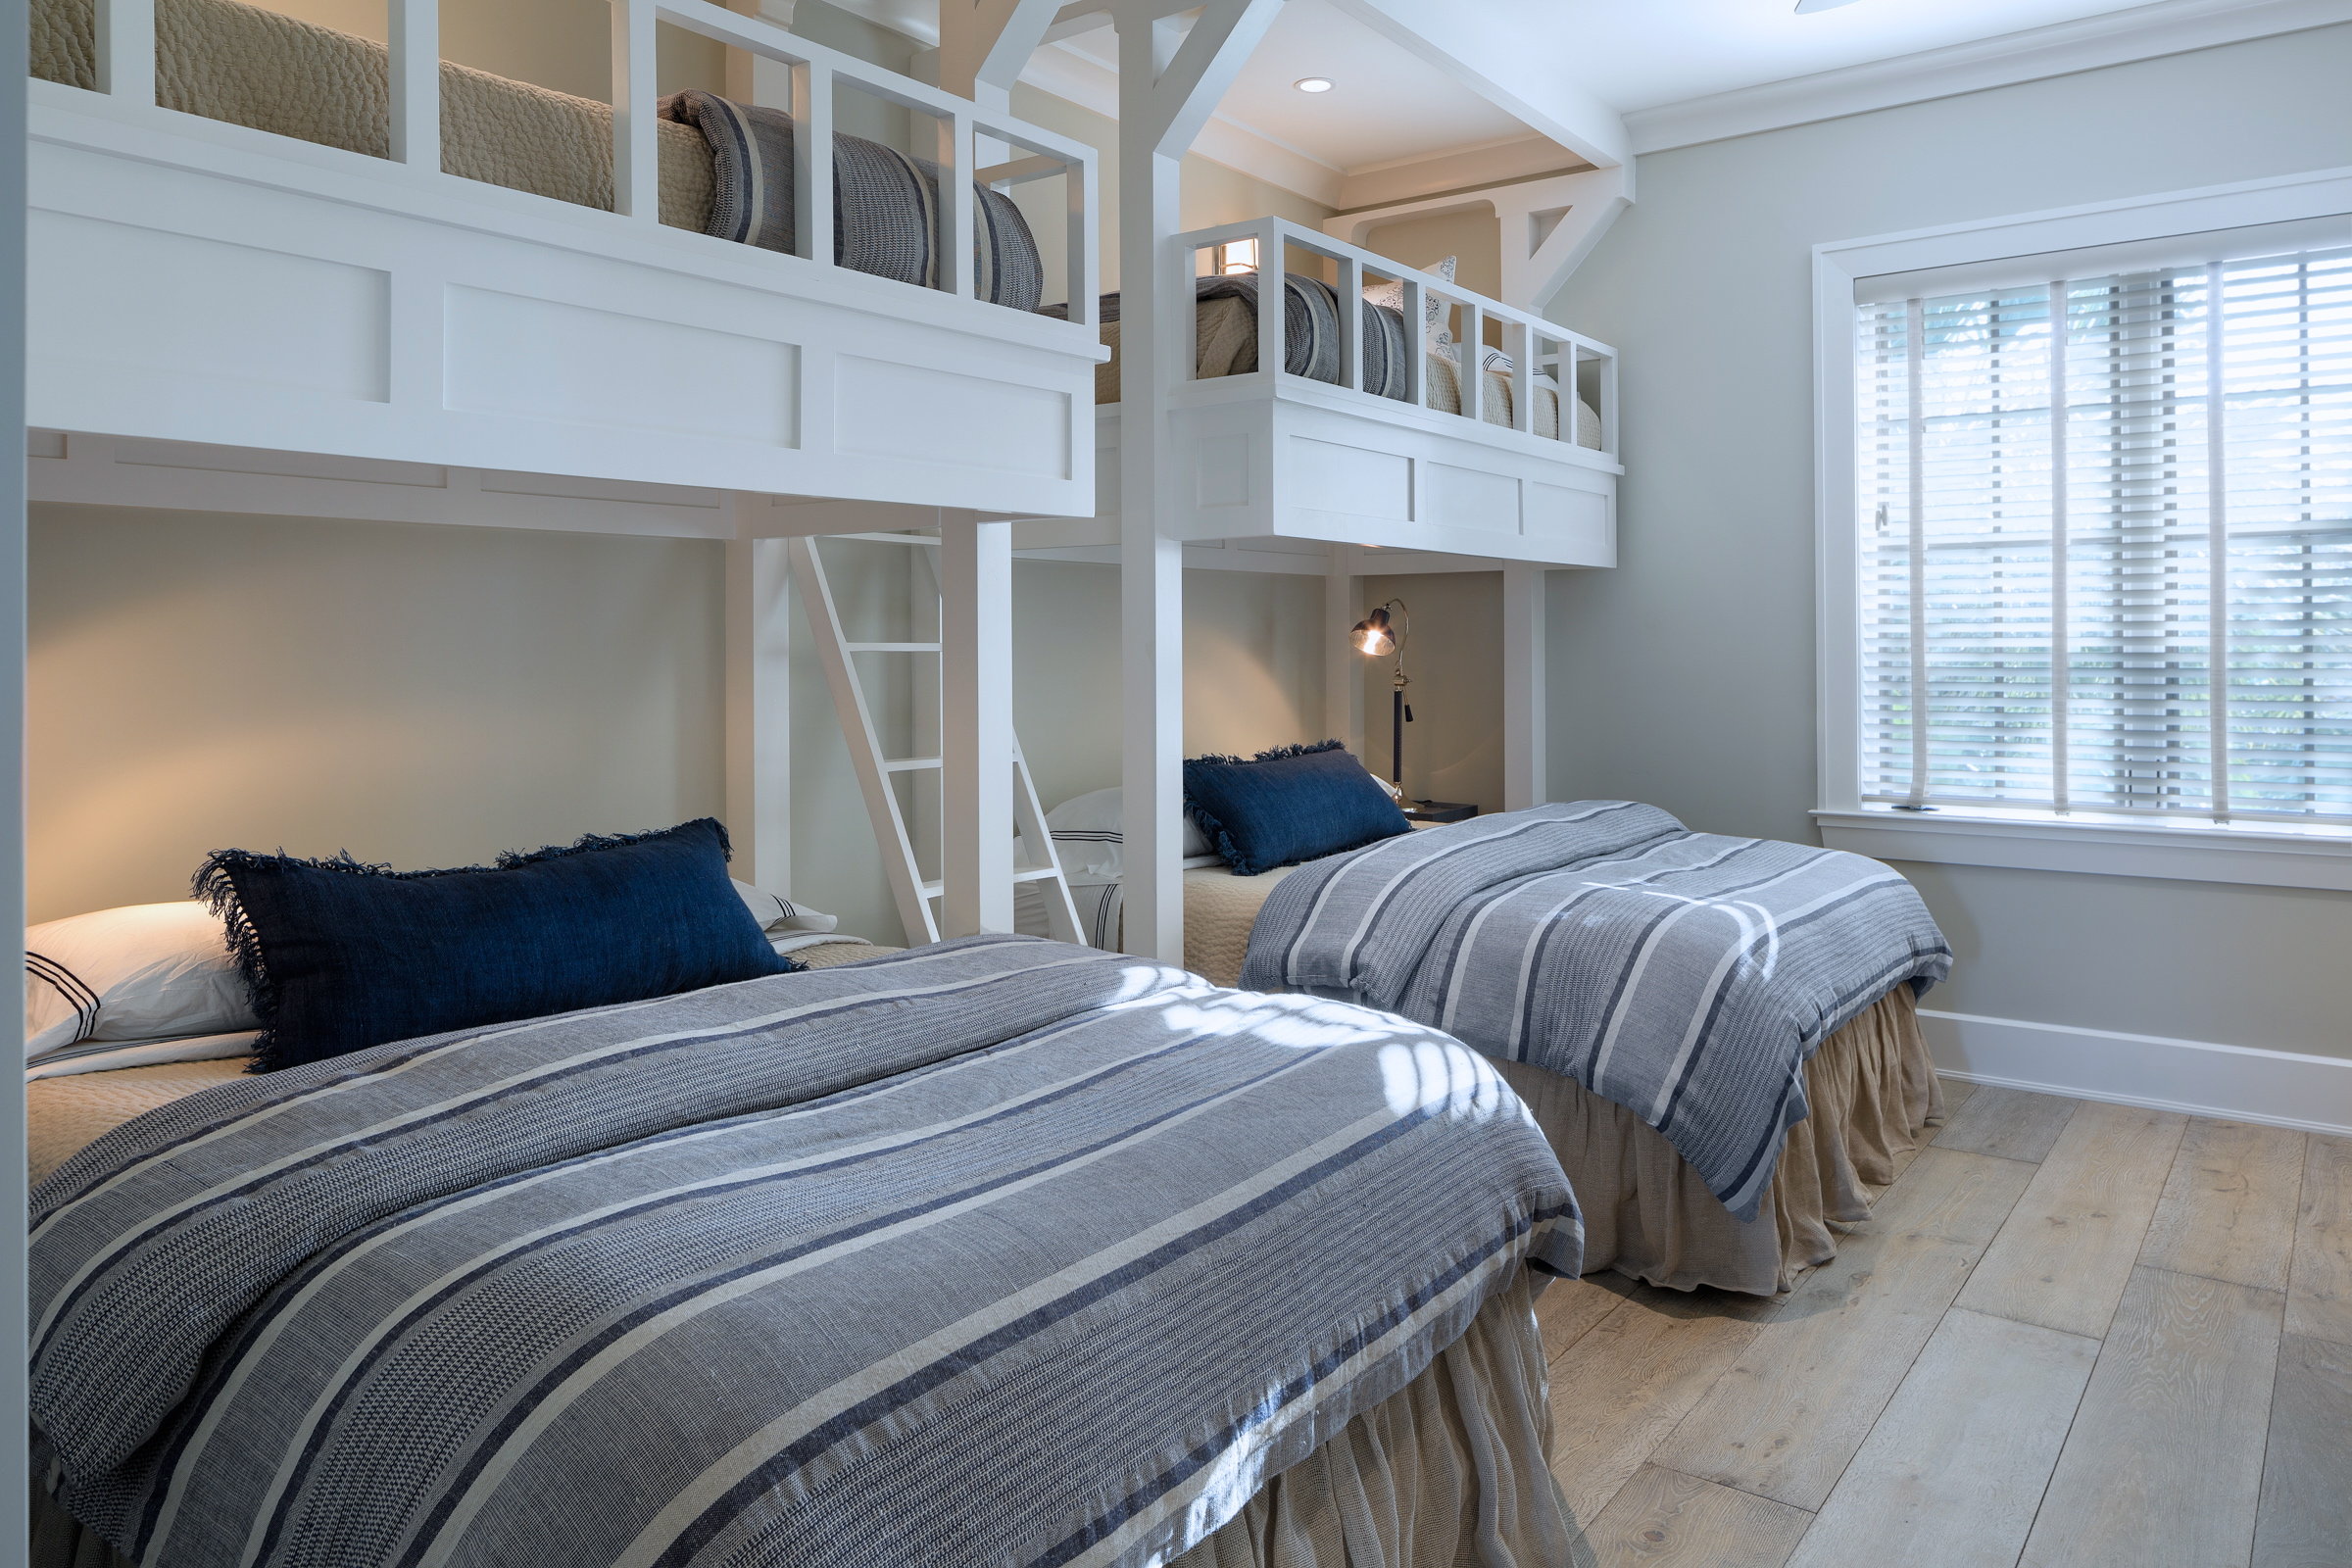 Bunk bed area with gray and navy accents